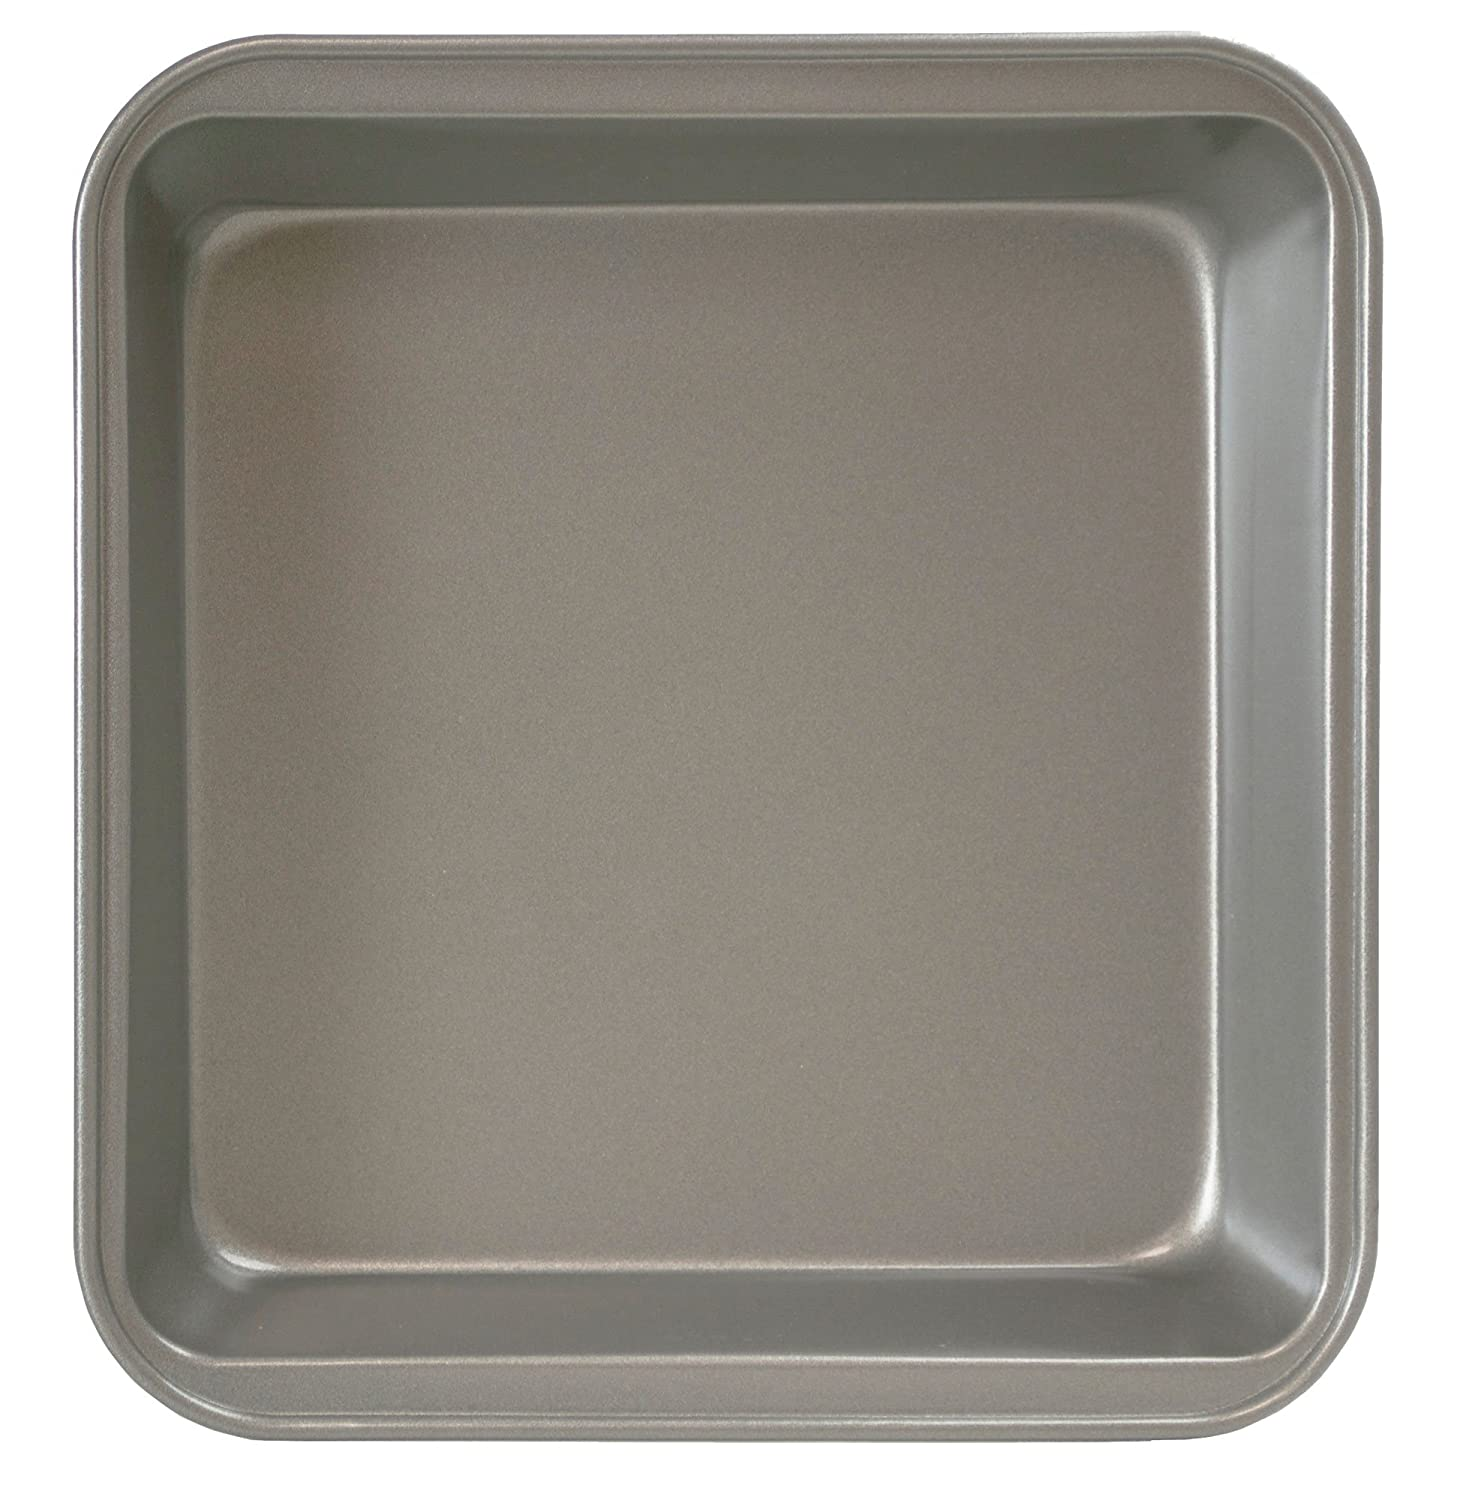 "Ecolution Bakeins Square Cake Baking Pan – PFOA, BPA, and PTFE Free Non-Stick Coating – Heavy Duty Carbon Steel – Dishwasher Safe – Gray – 9"" x 9"" x 2"""